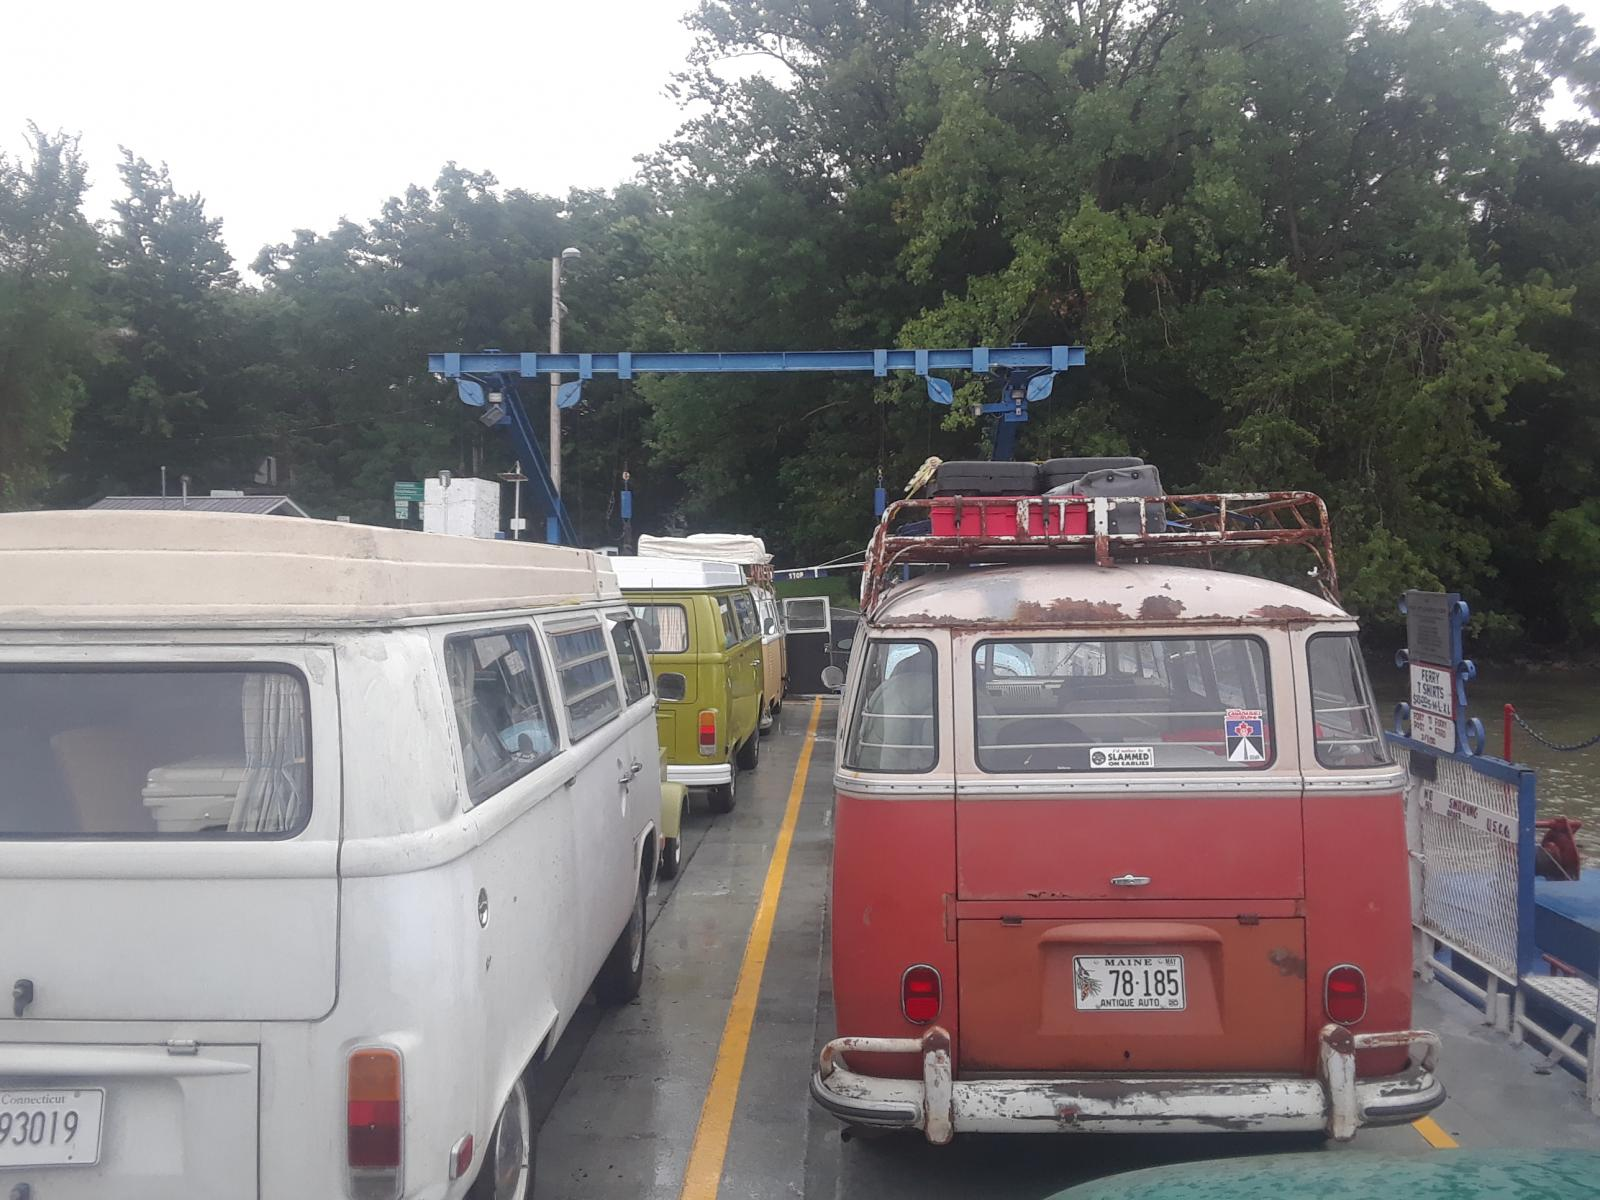 Aircooled Vws on Ticonderoga Ferry August 22, 2019.